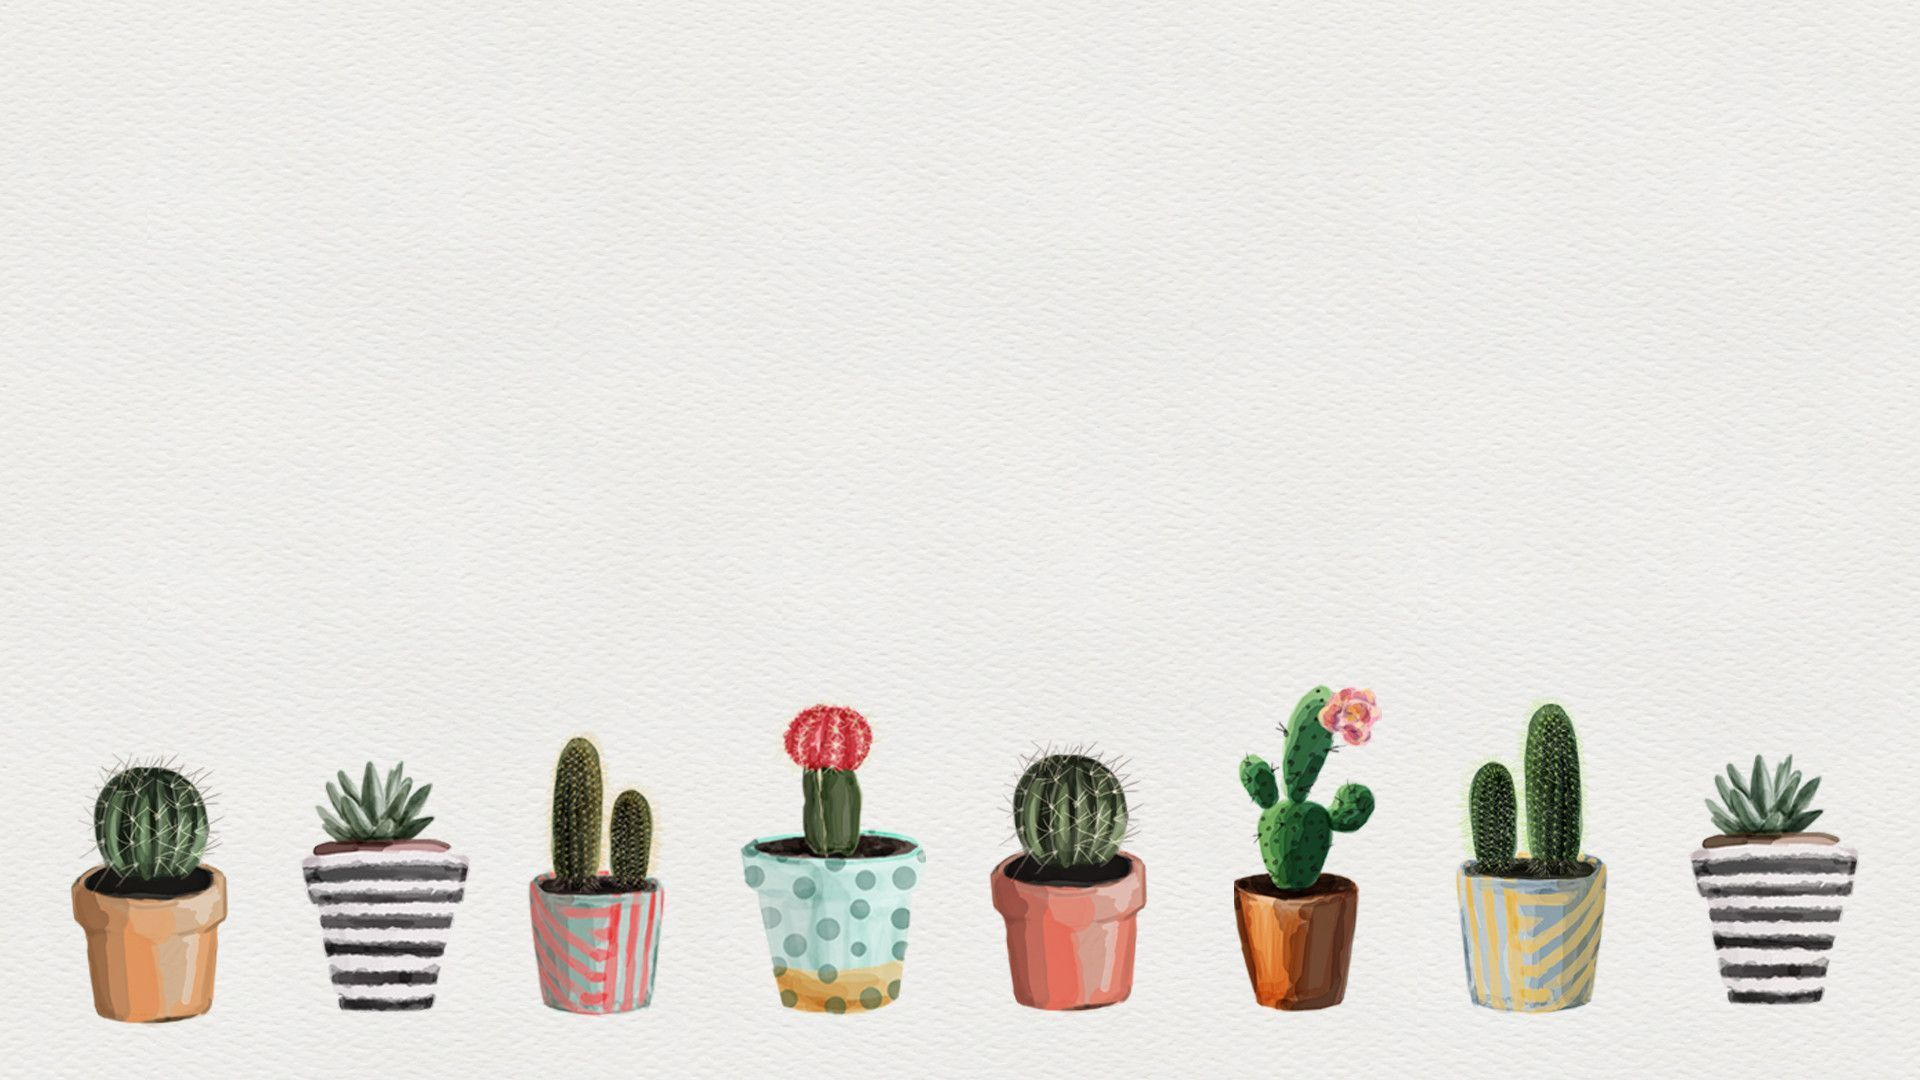 Aesthetic Succulents Wallpapers Top Free Aesthetic Succulents Backgrounds Wallpaperaccess Succulents Wallpaper Cactus Backgrounds Plant Wallpaper